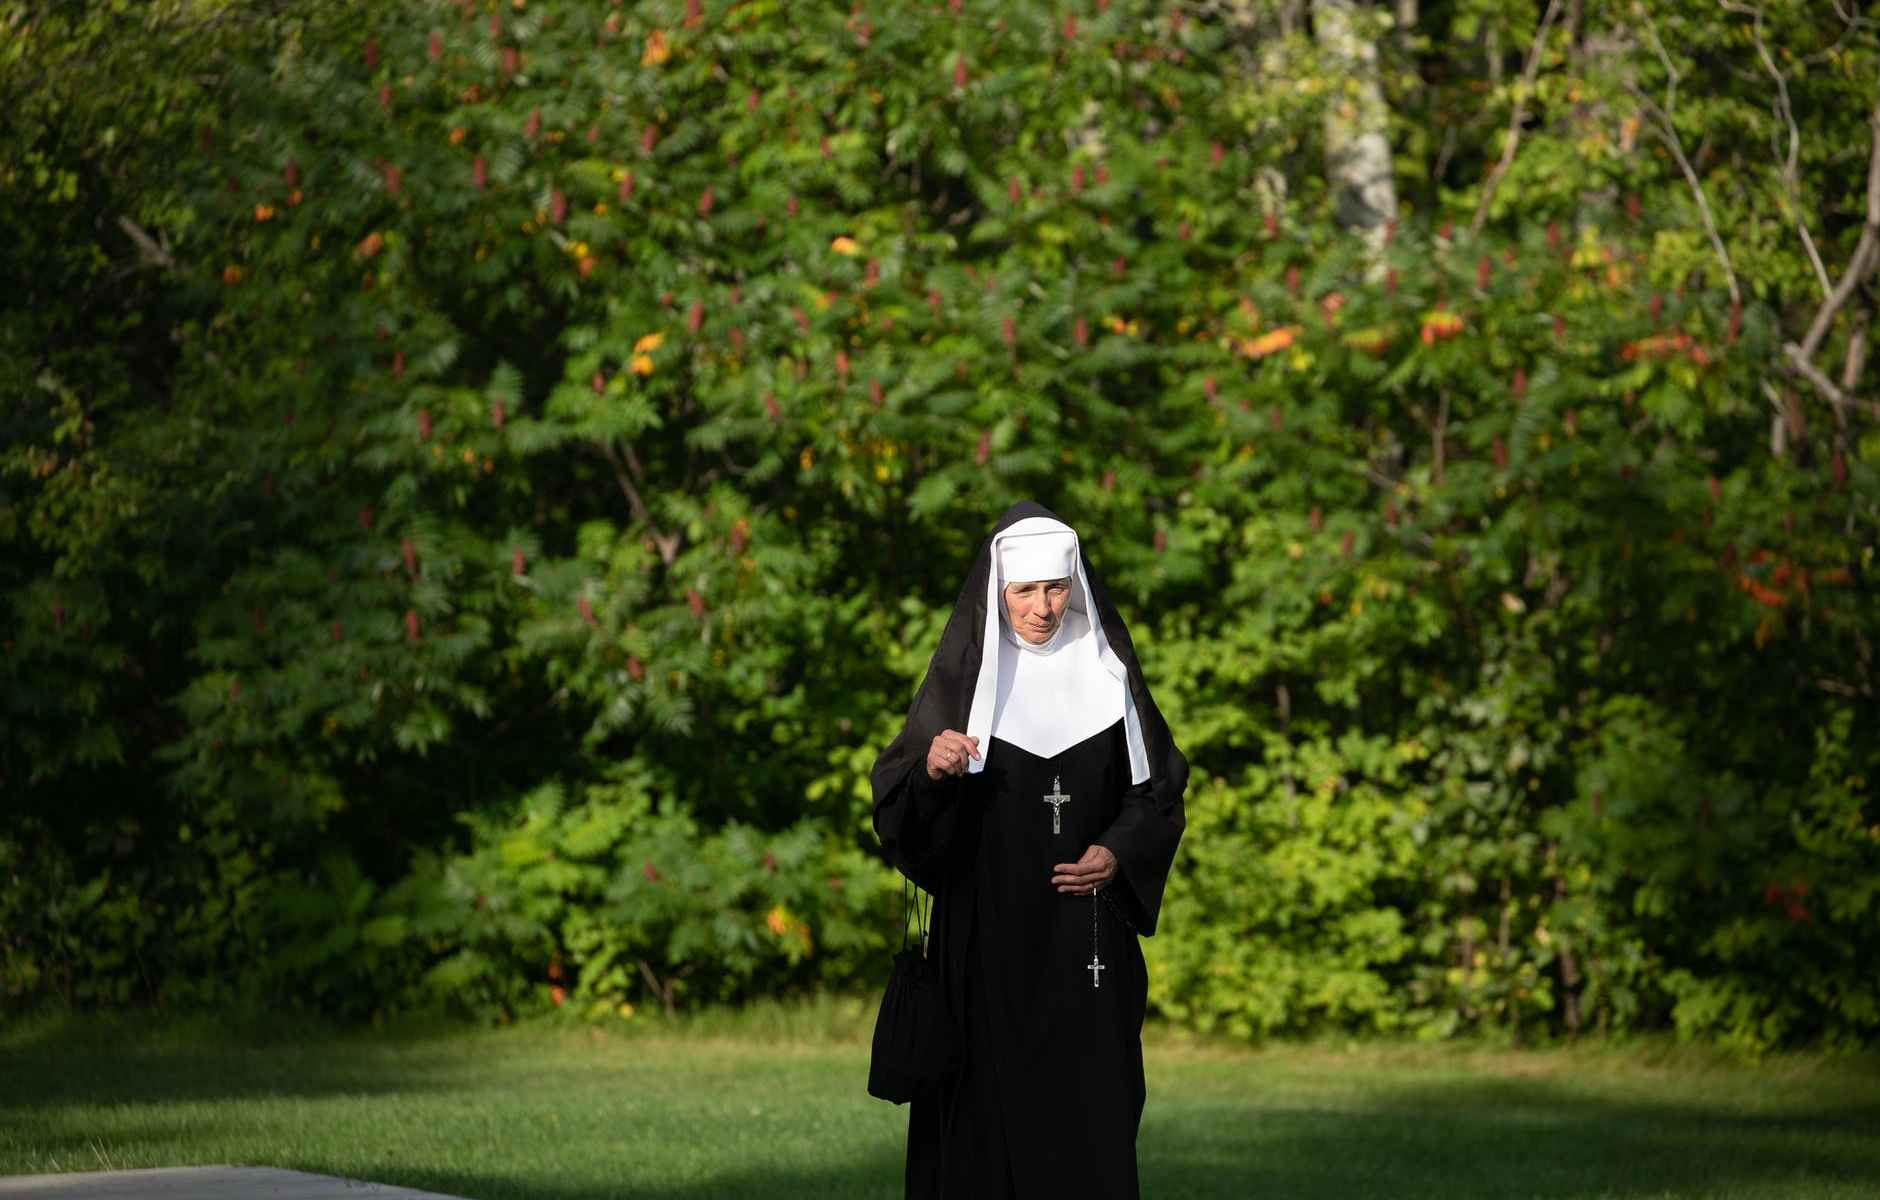 nun walking near trees